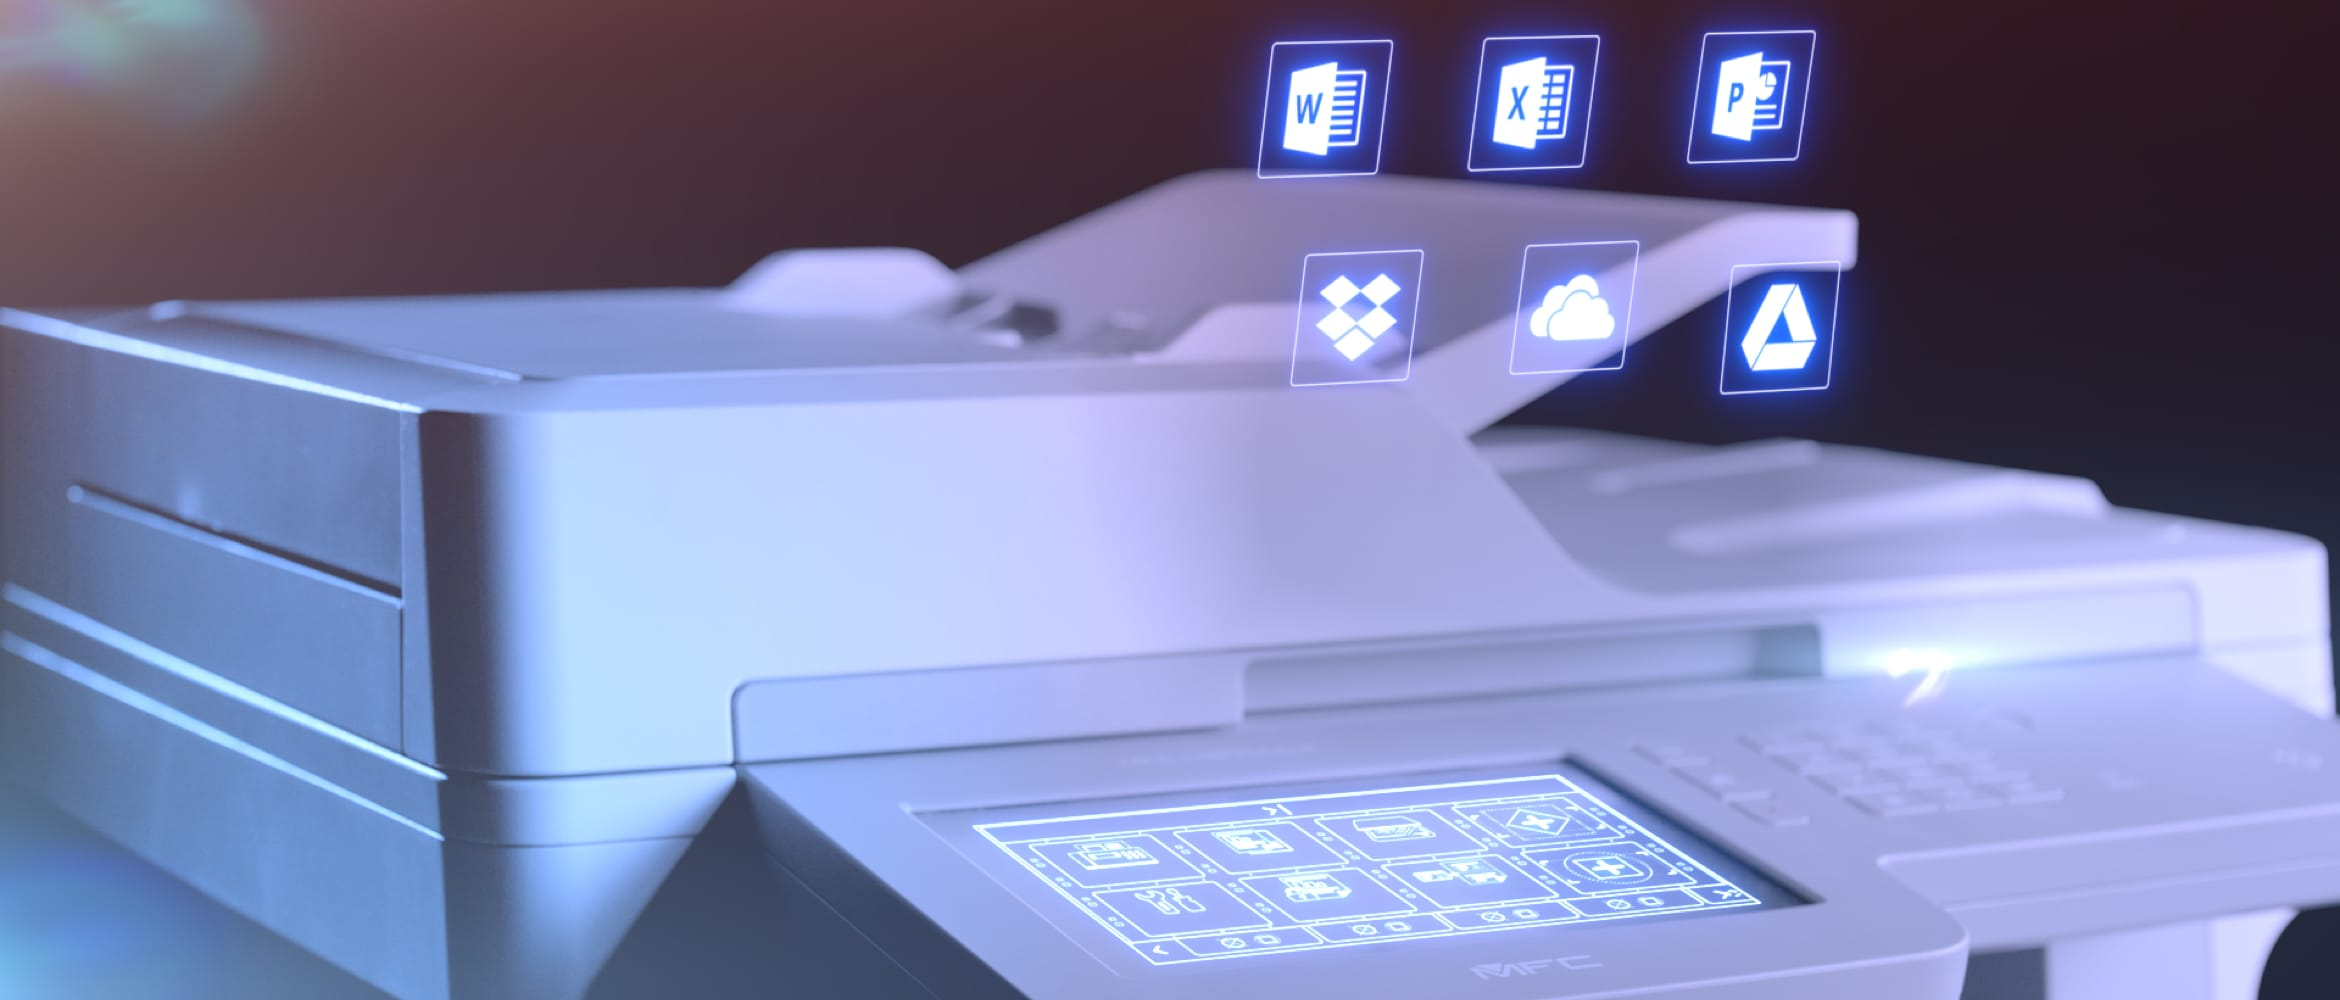 Multifunction printer with Brother Scan to Office and Web Connect compatible app icons